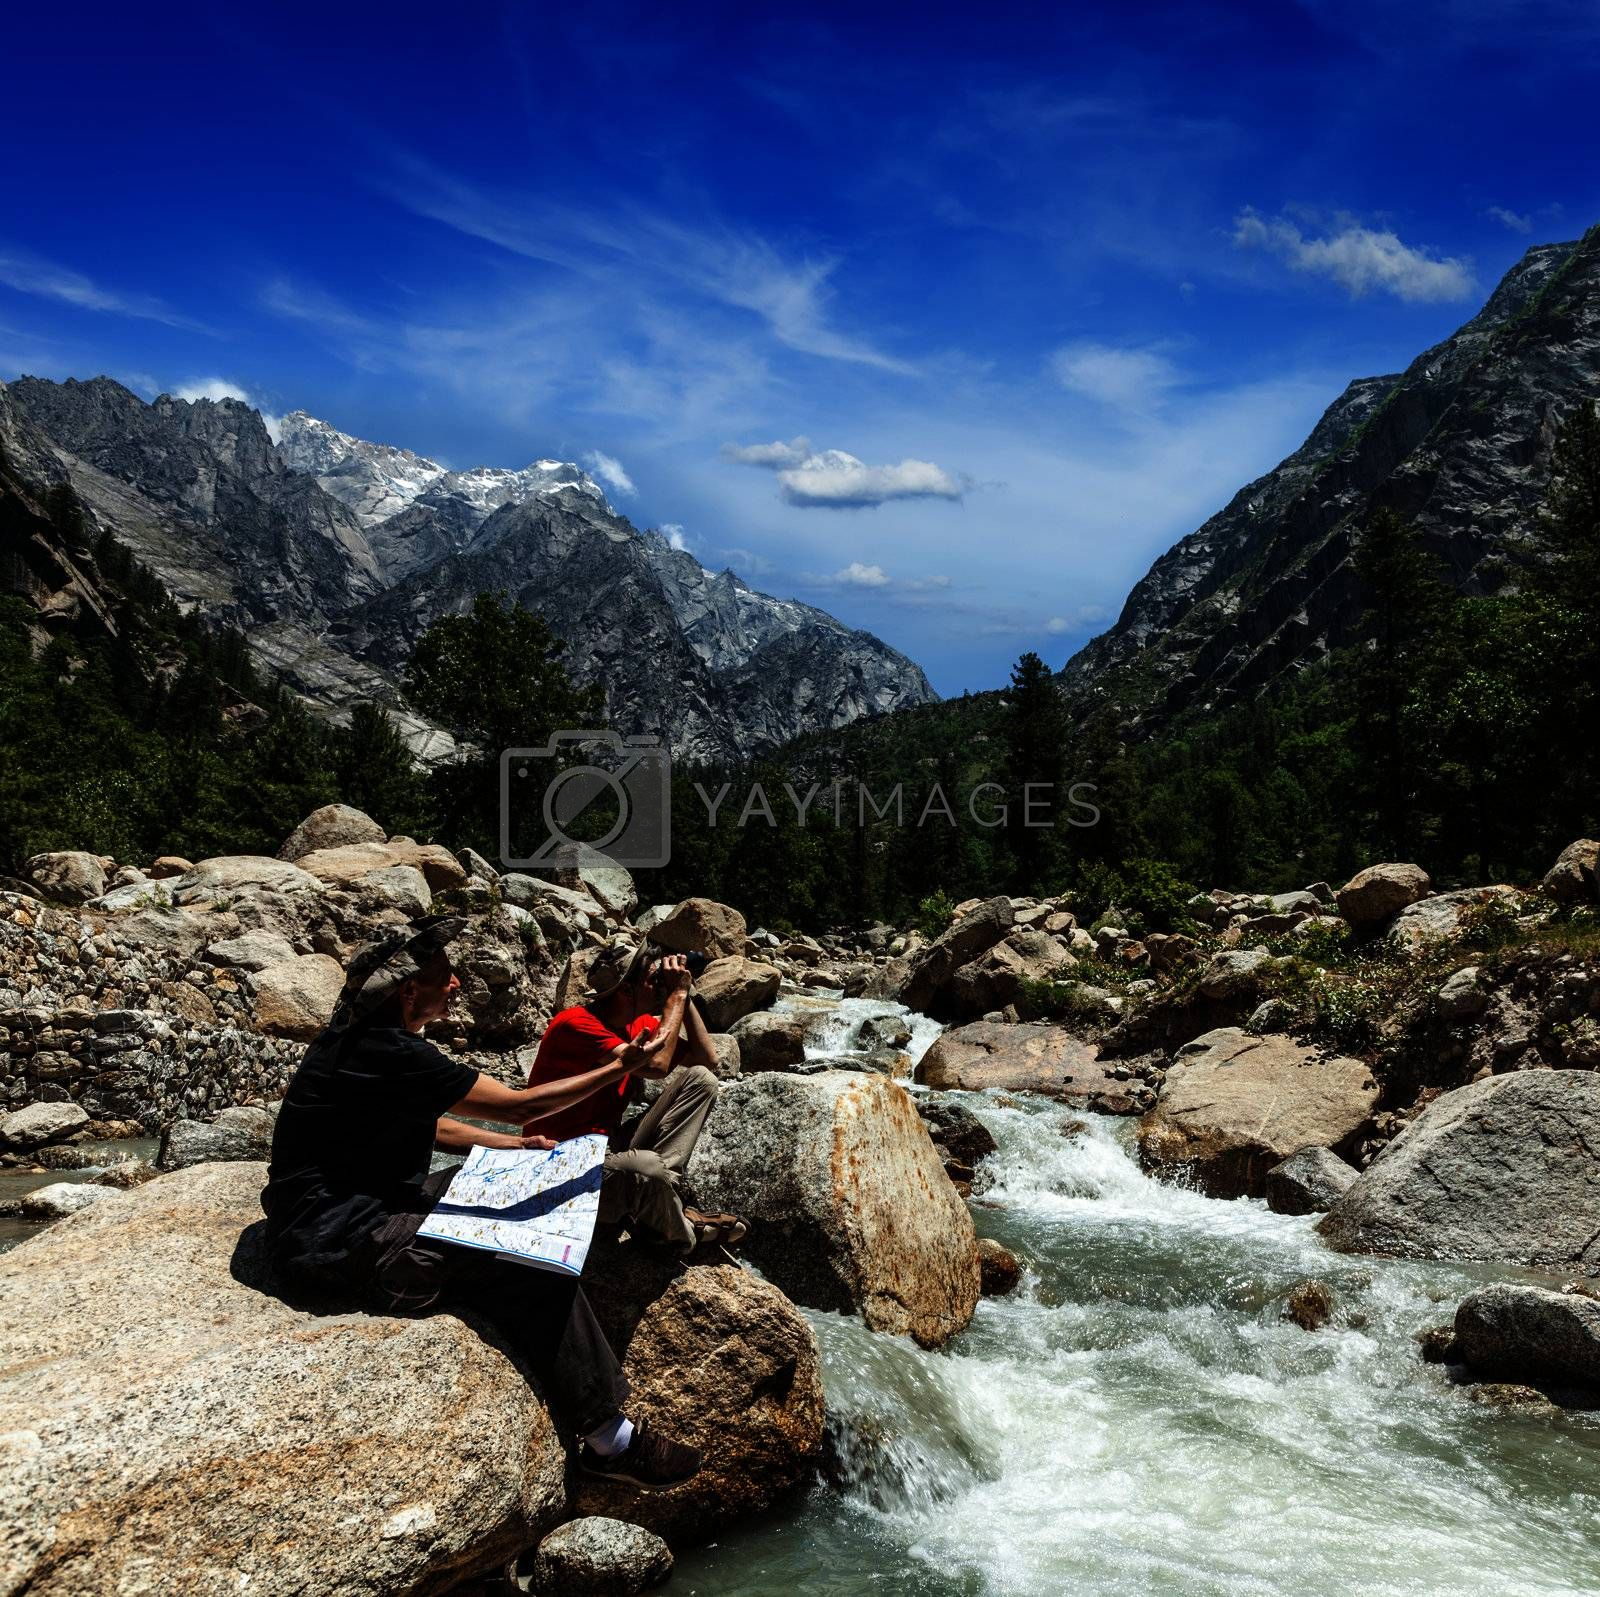 Hiker trekkers read a trekking map on trek in Himalayas mountains. Himachal Pradesh,India